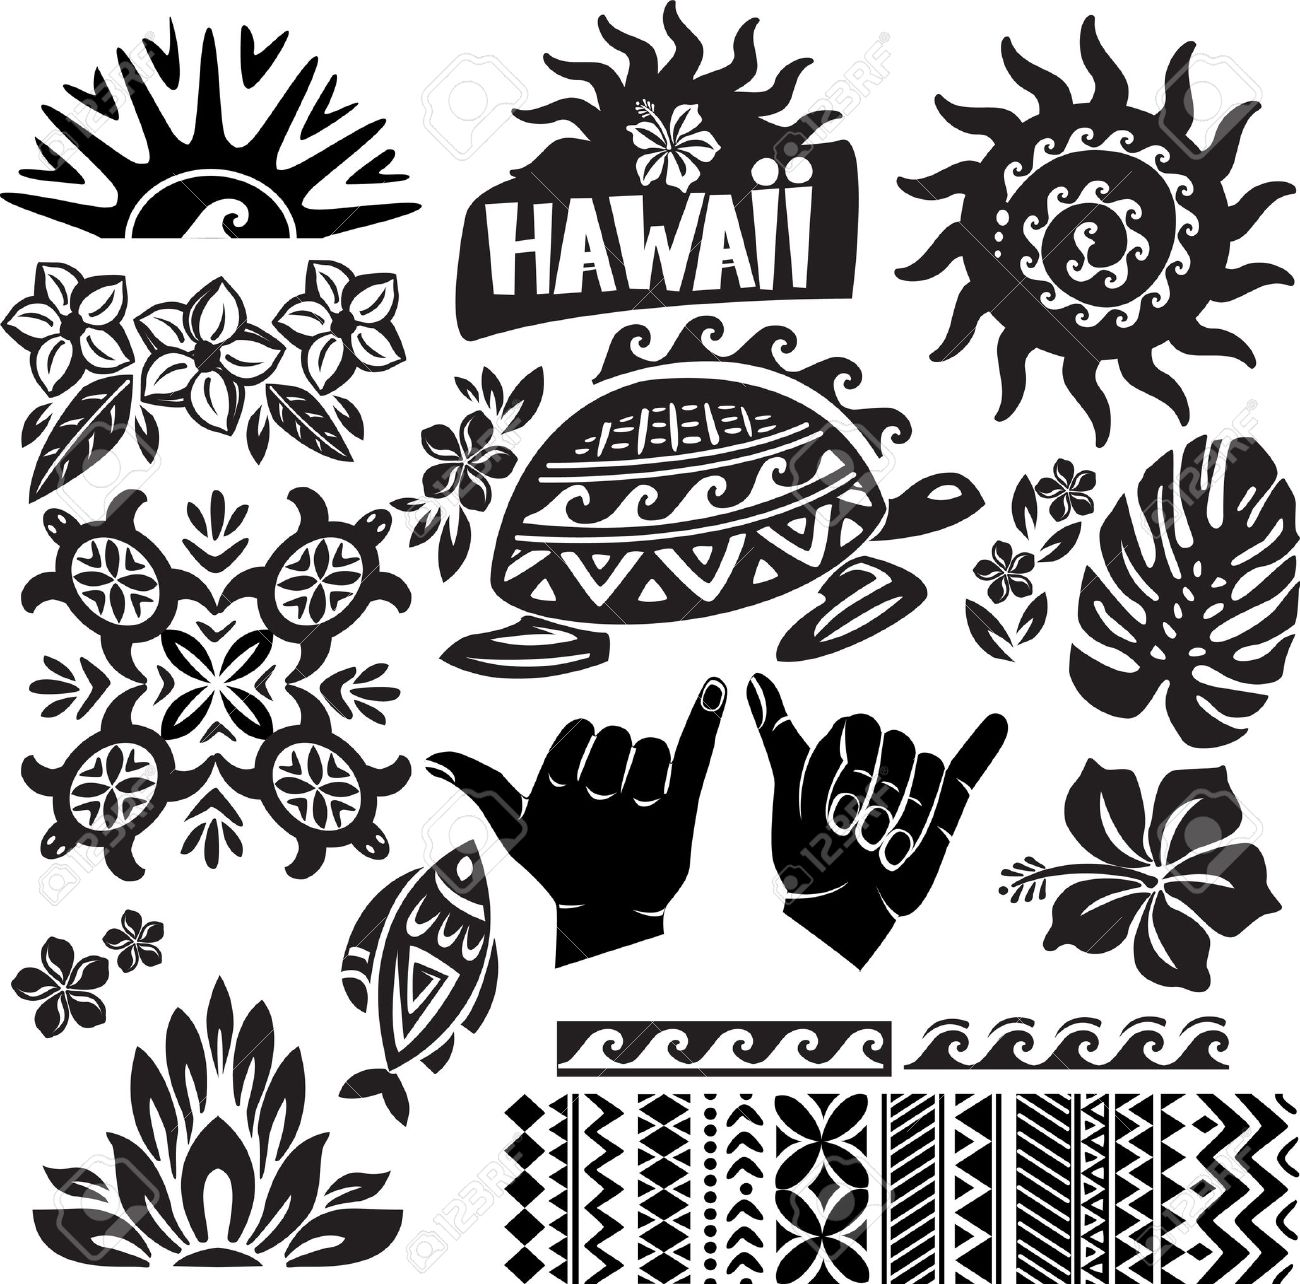 Hawaii Set in black and white - 17833787